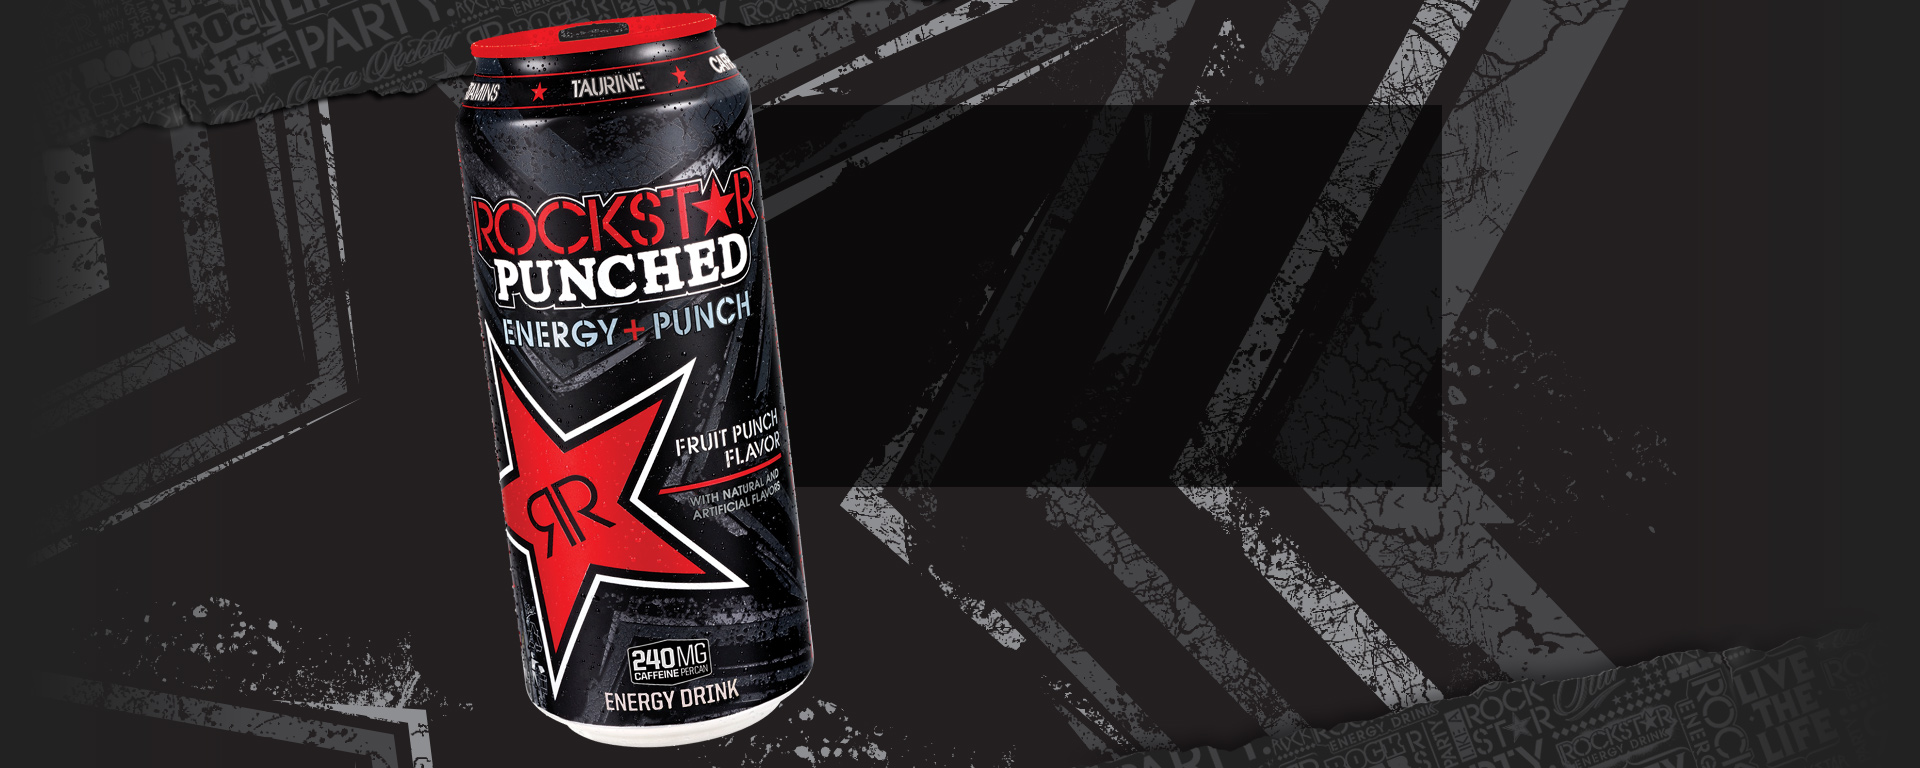 Punched - Rockstar Energy Drink